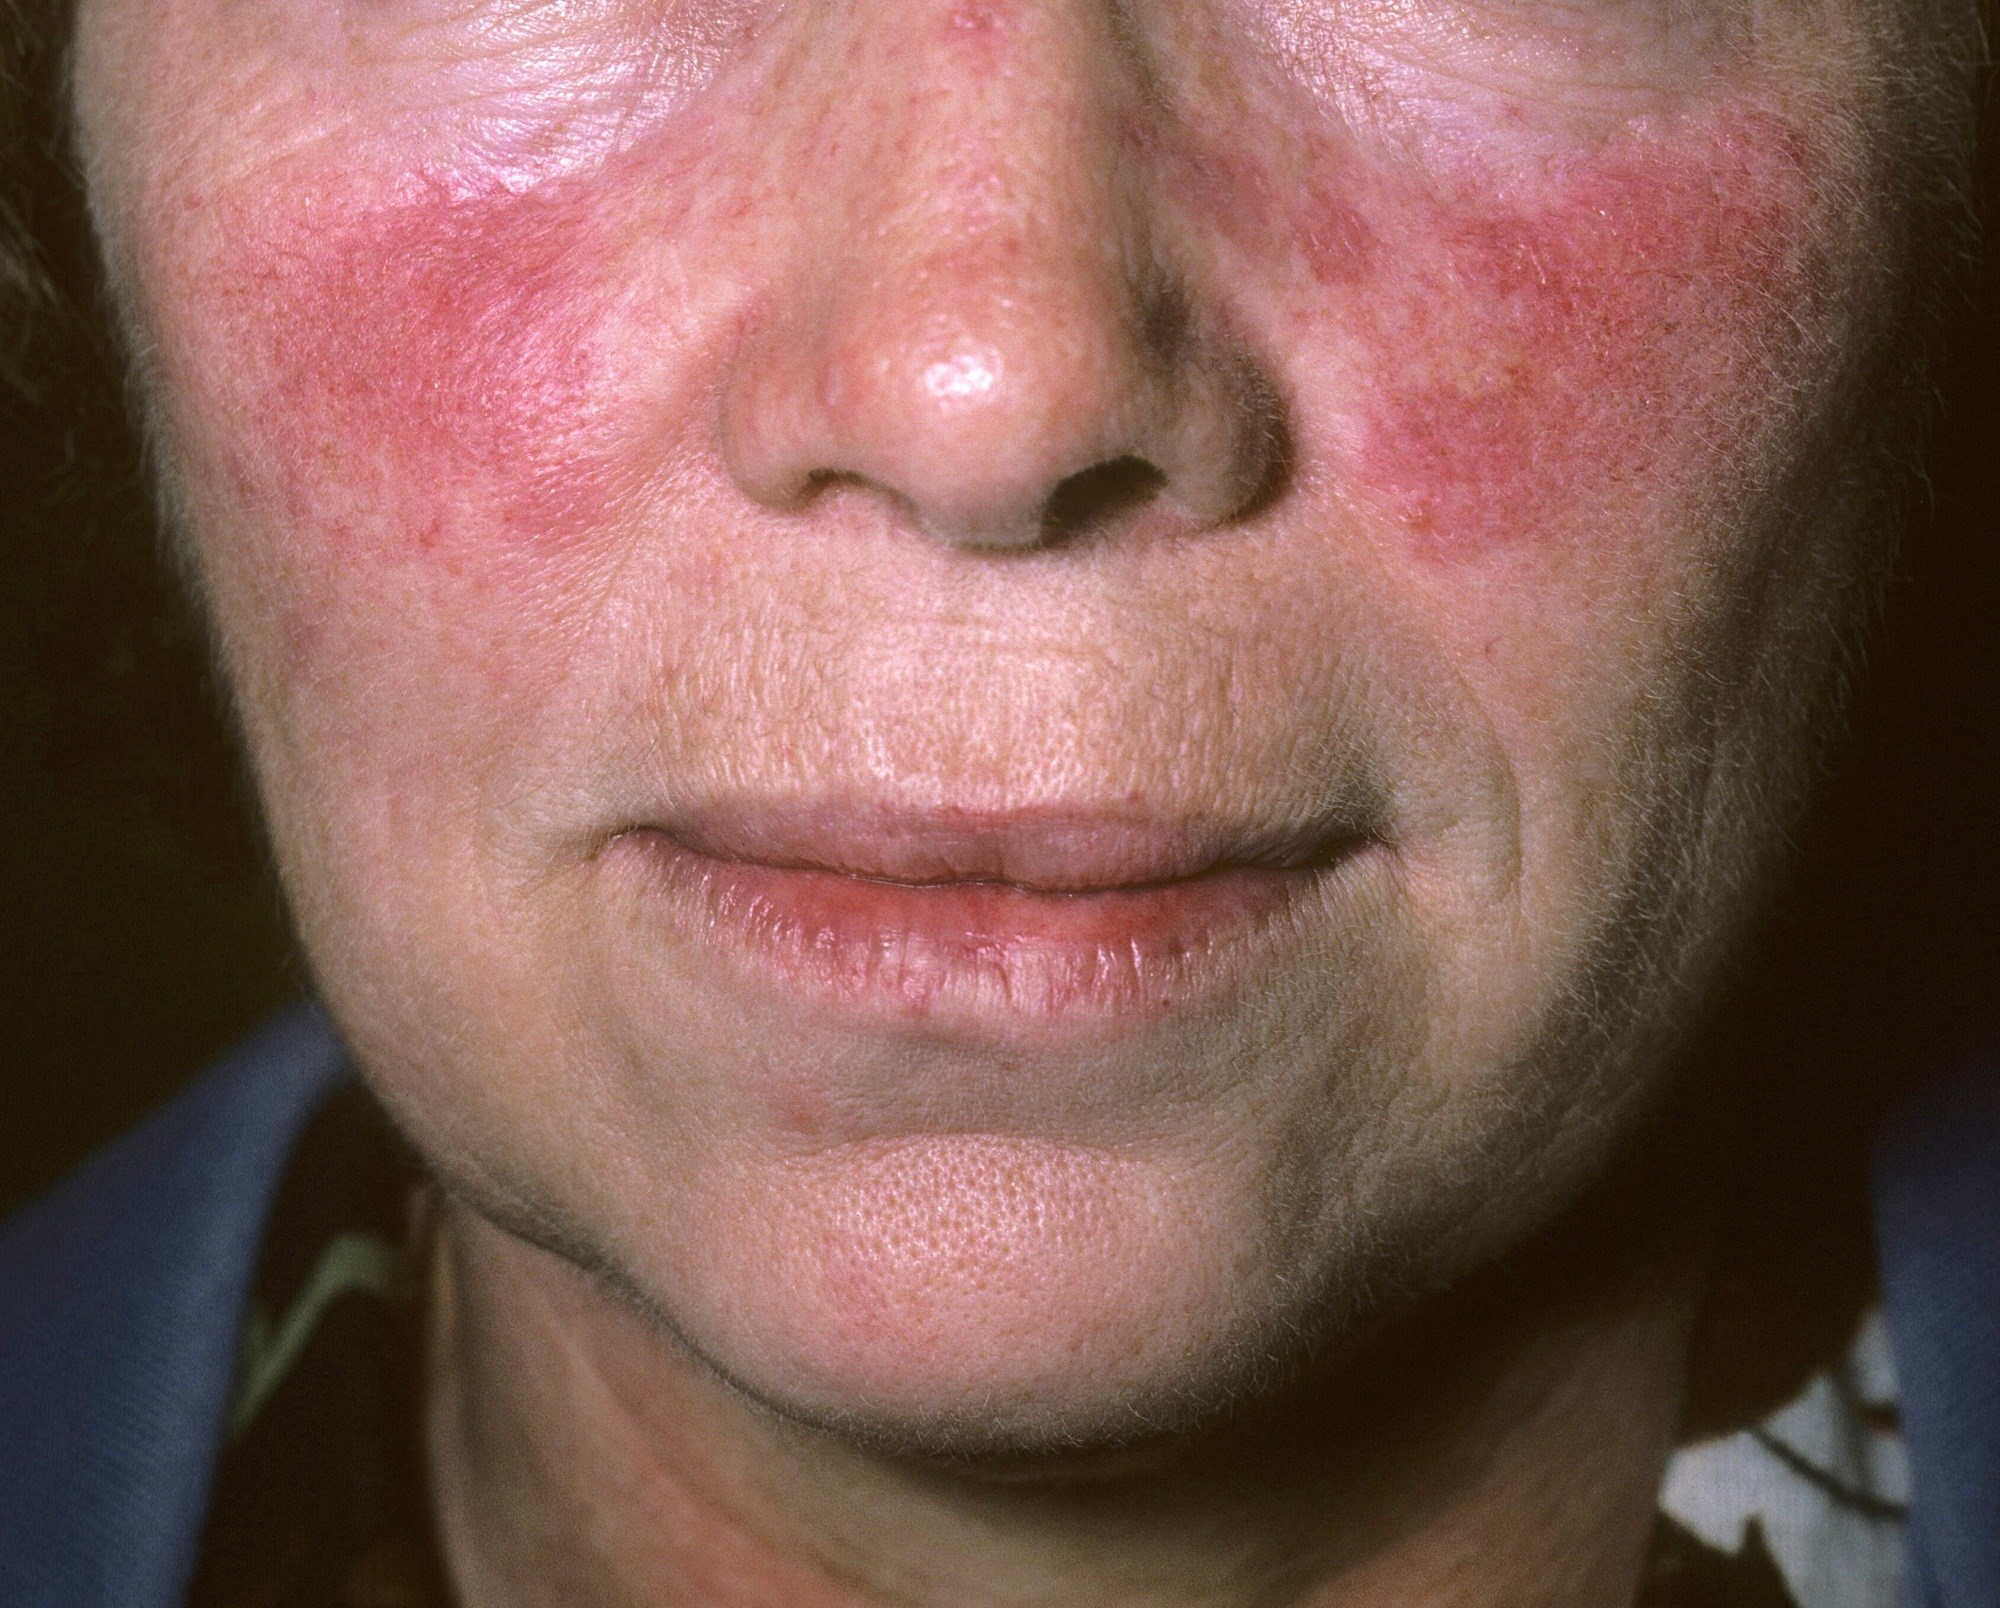 Botulinum Toxin Type A Effective for Treating Rosacea Facial Flushing